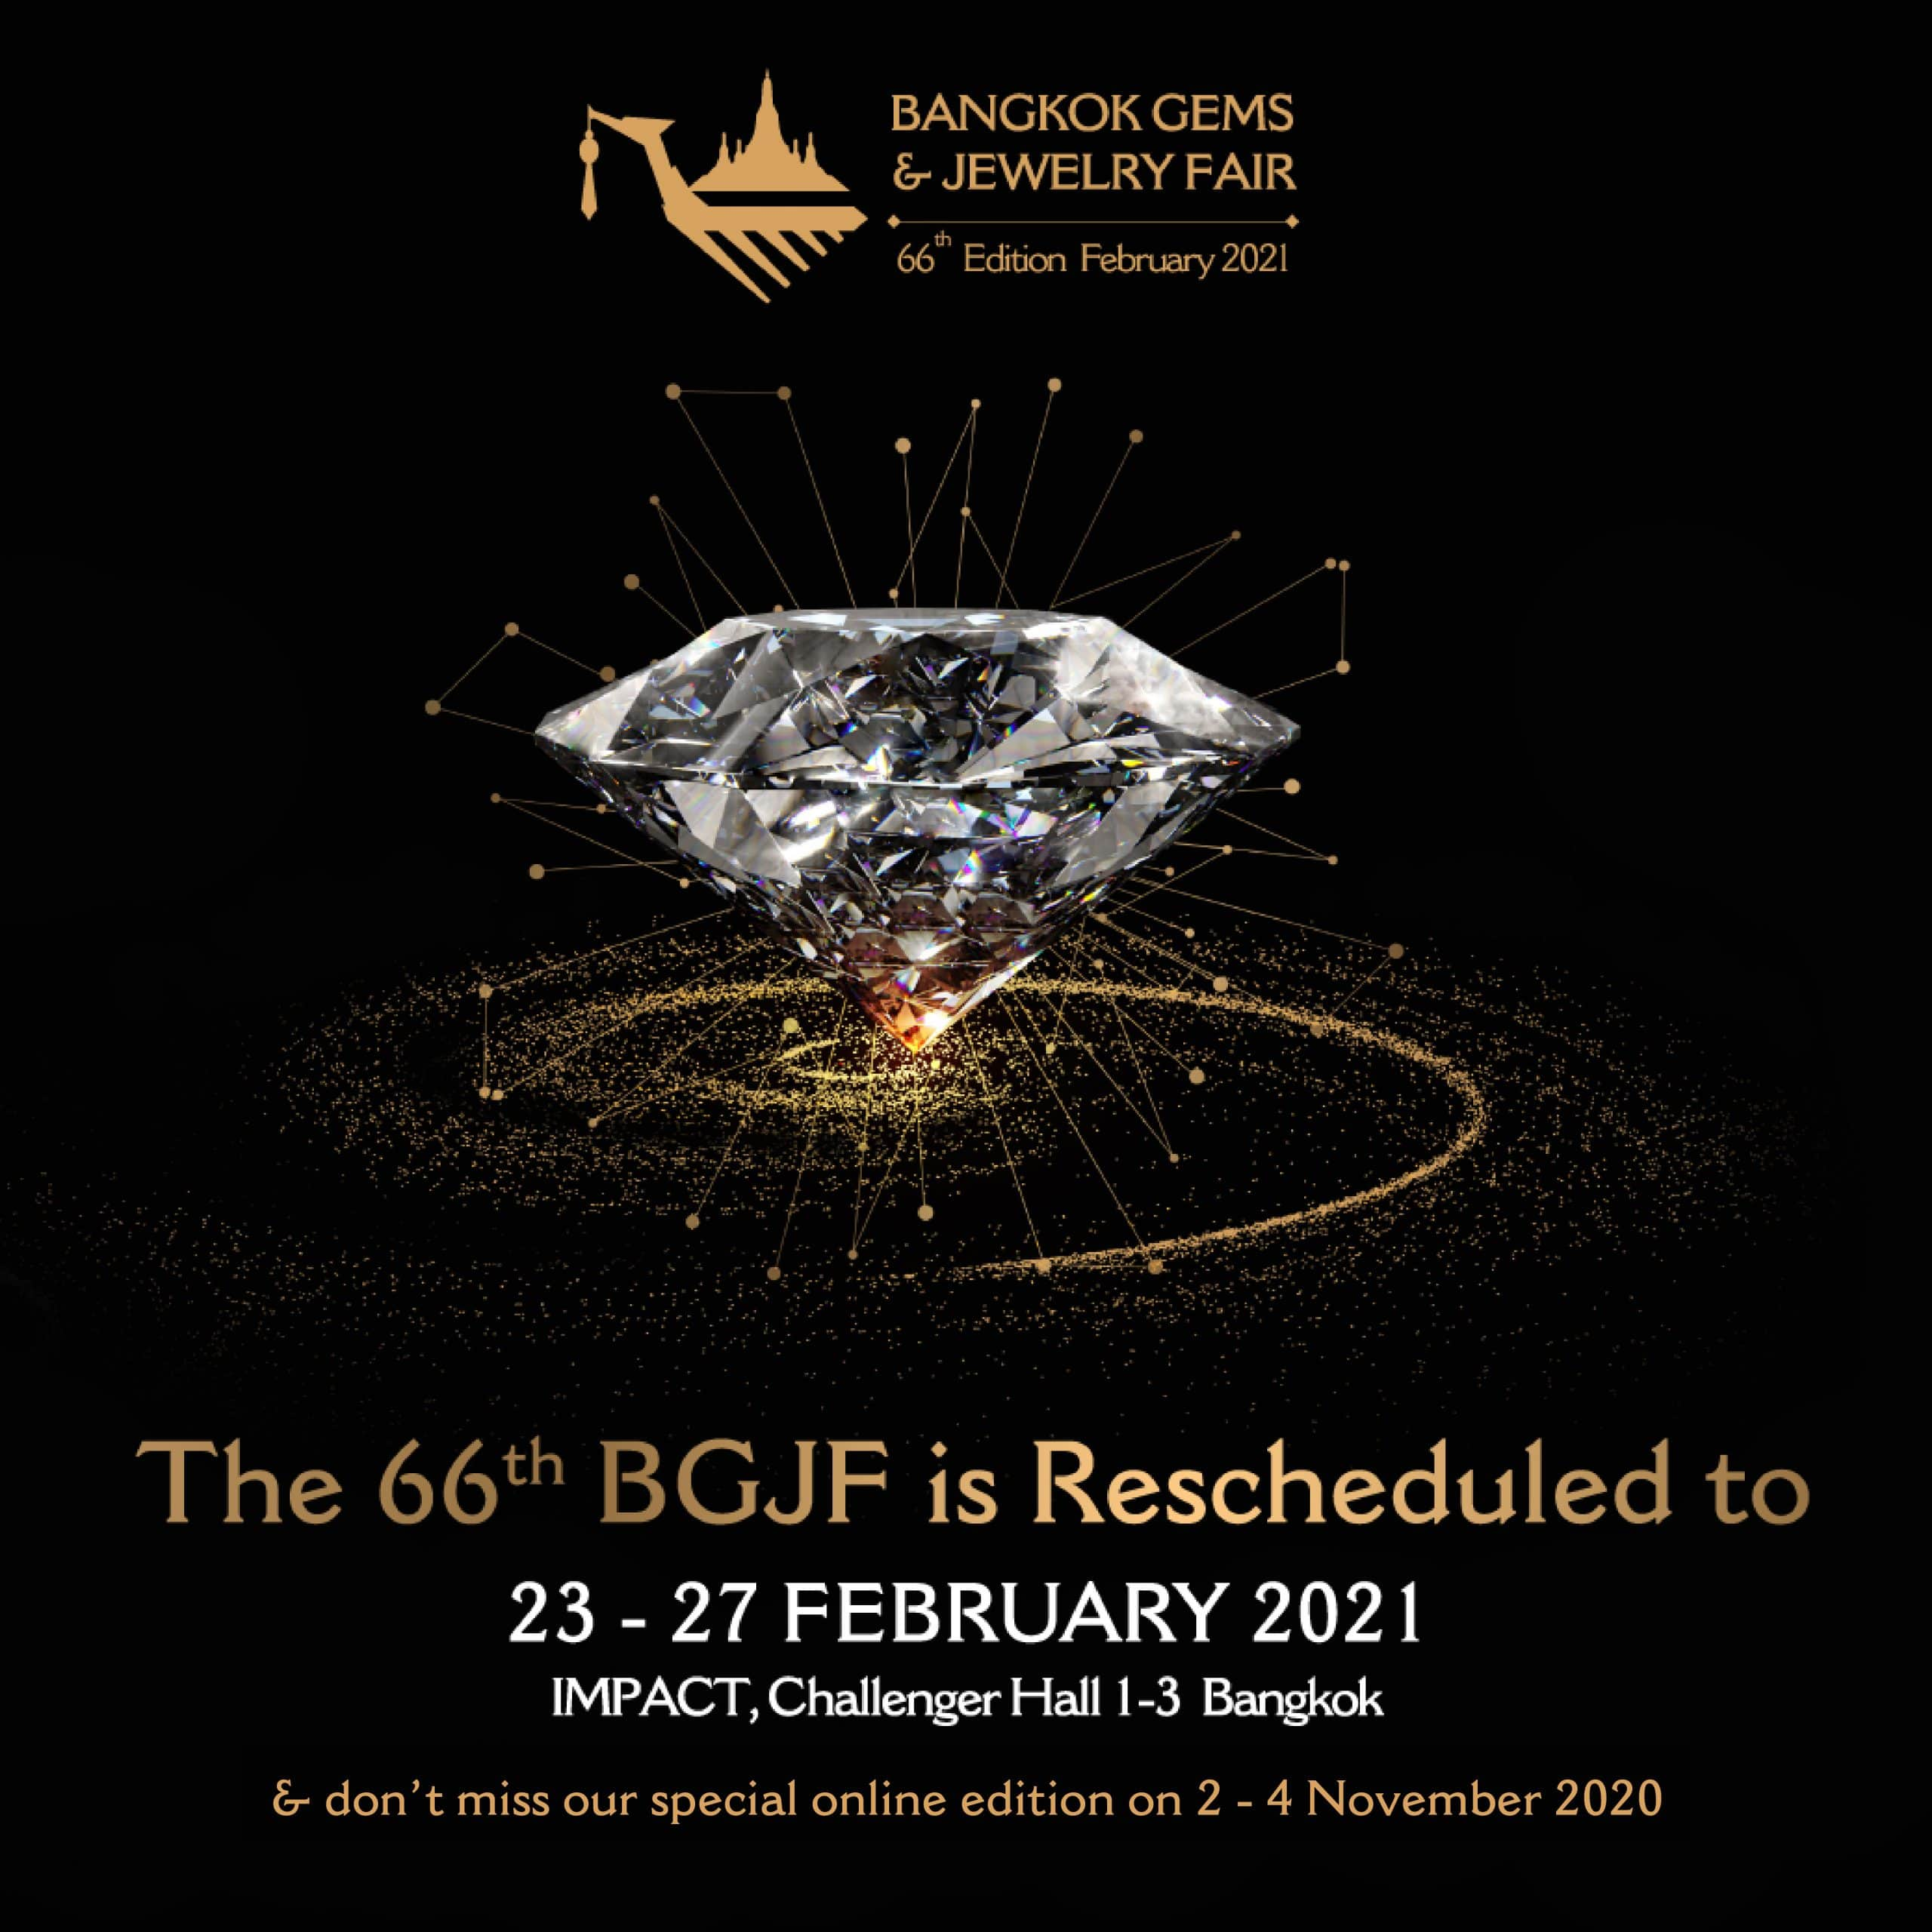 Rescheduling of September Bangkok Gems and Jewelry Fair to February 2021, Online Edition to be launched in November 2020